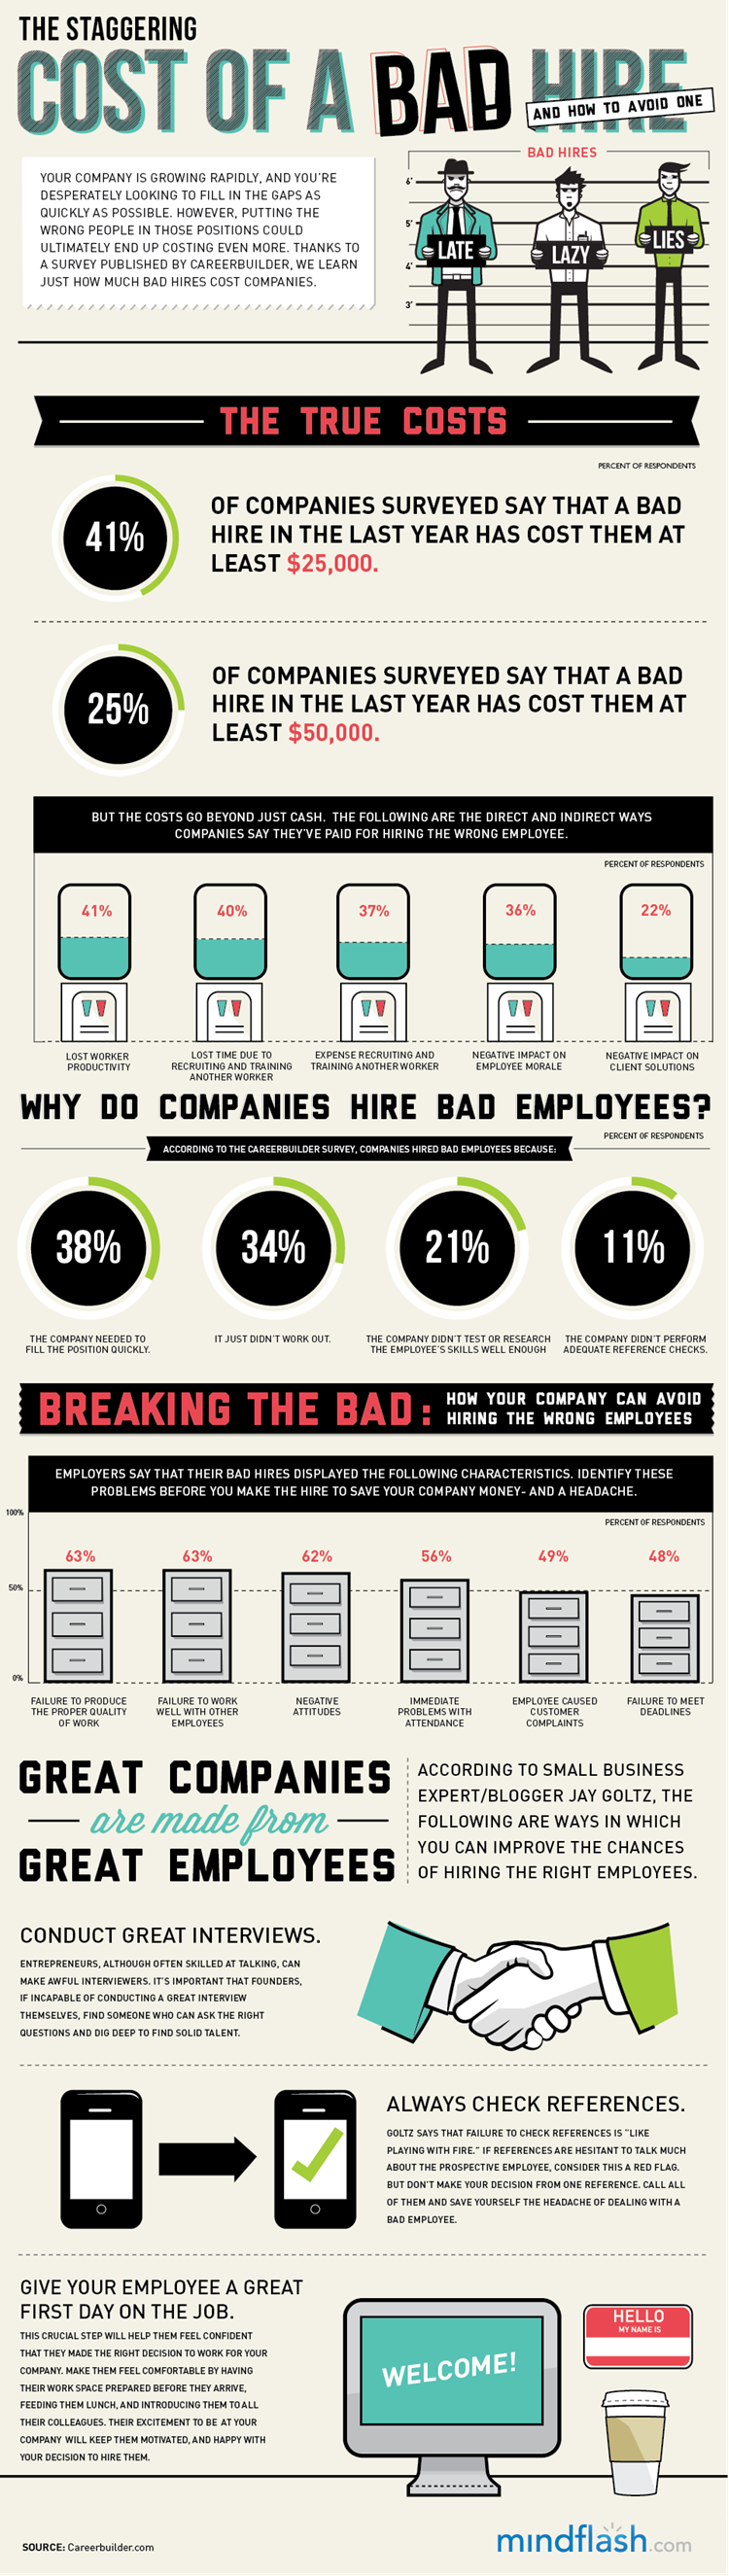 Infographic - So you made a bad hire. Now what?